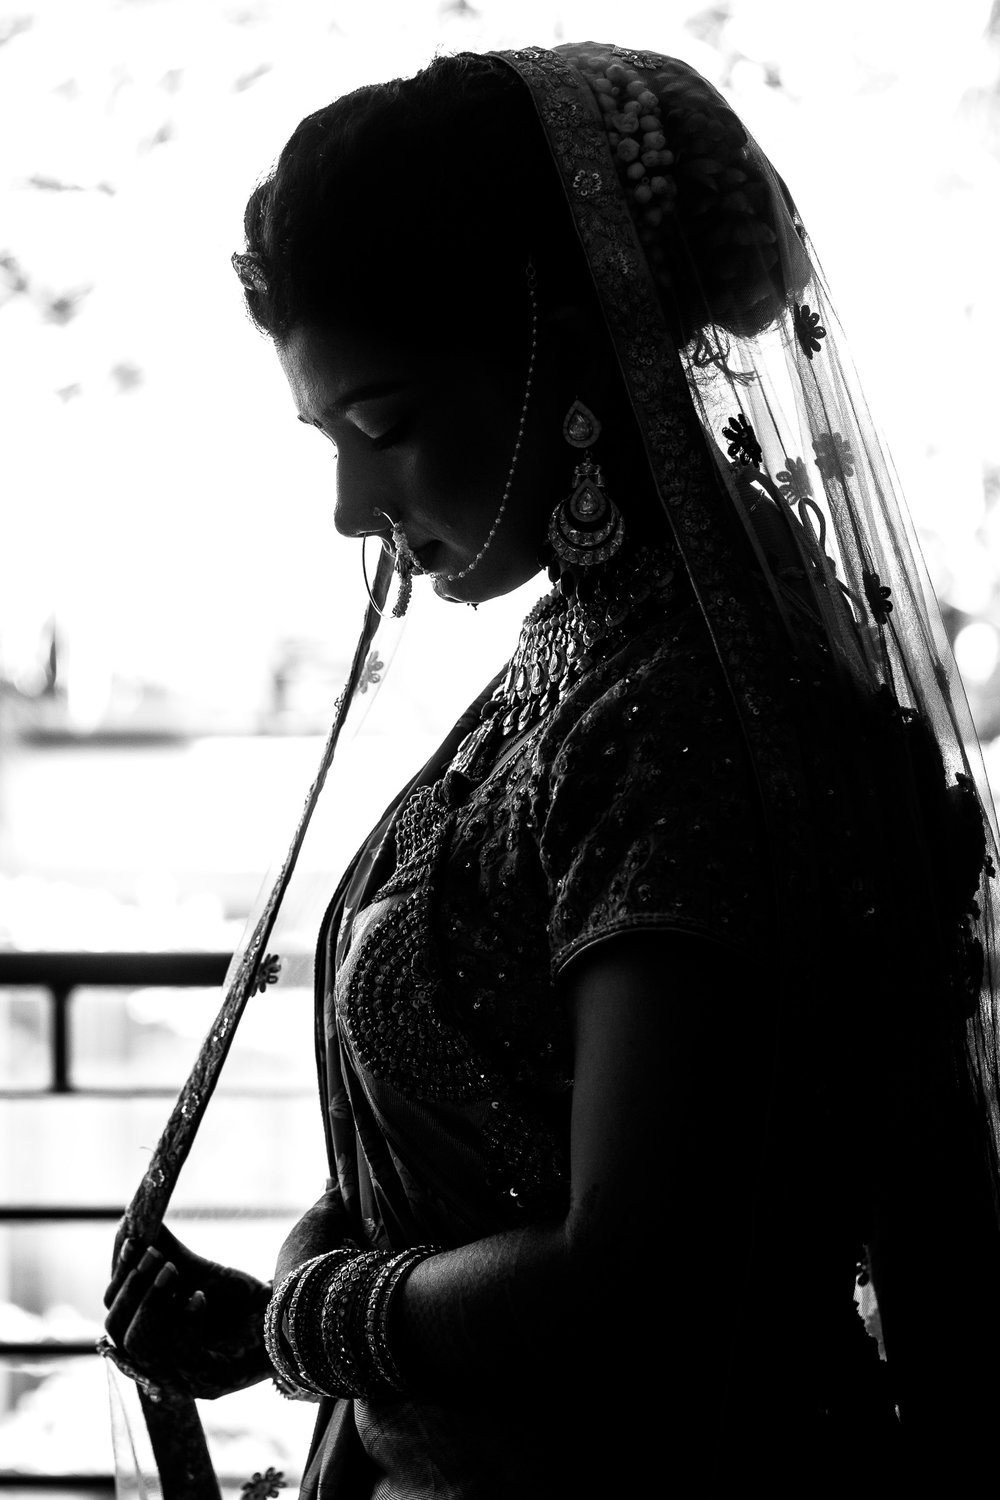 marwari-candid-wedding-photographers-bangalore-0011.jpg